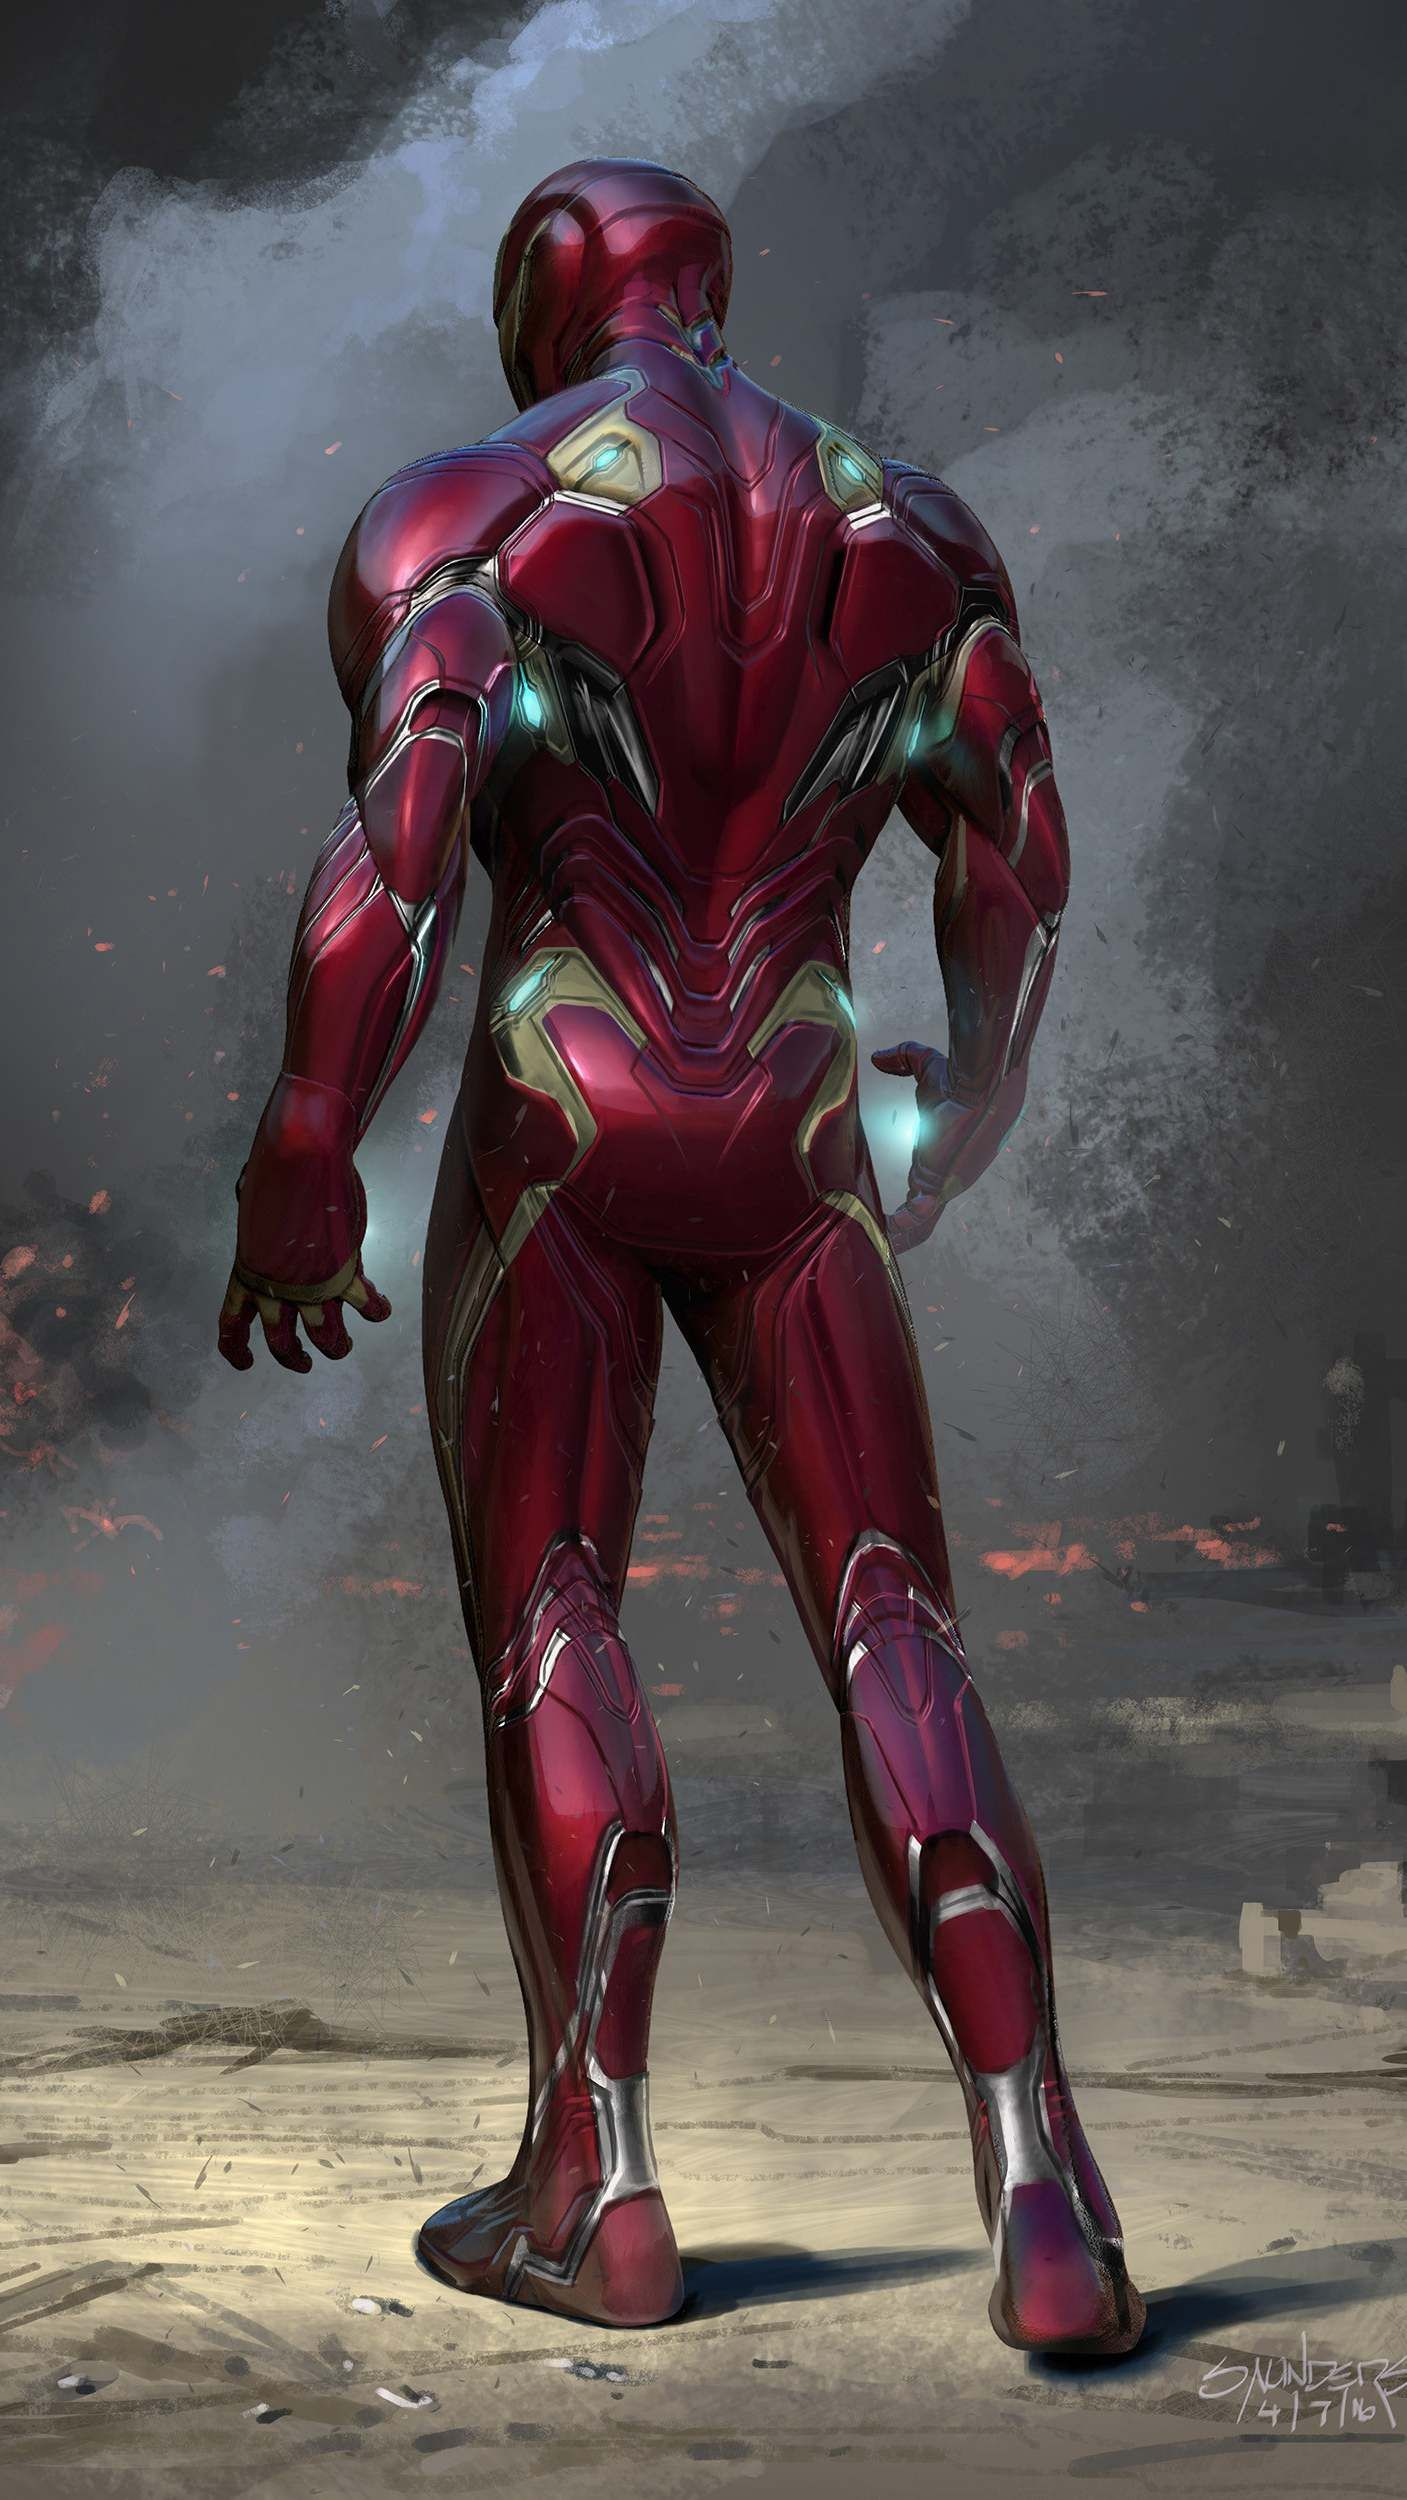 Nano Tech Suit Iron Man Iphone Wallpaper Iron Man Avengers Iron